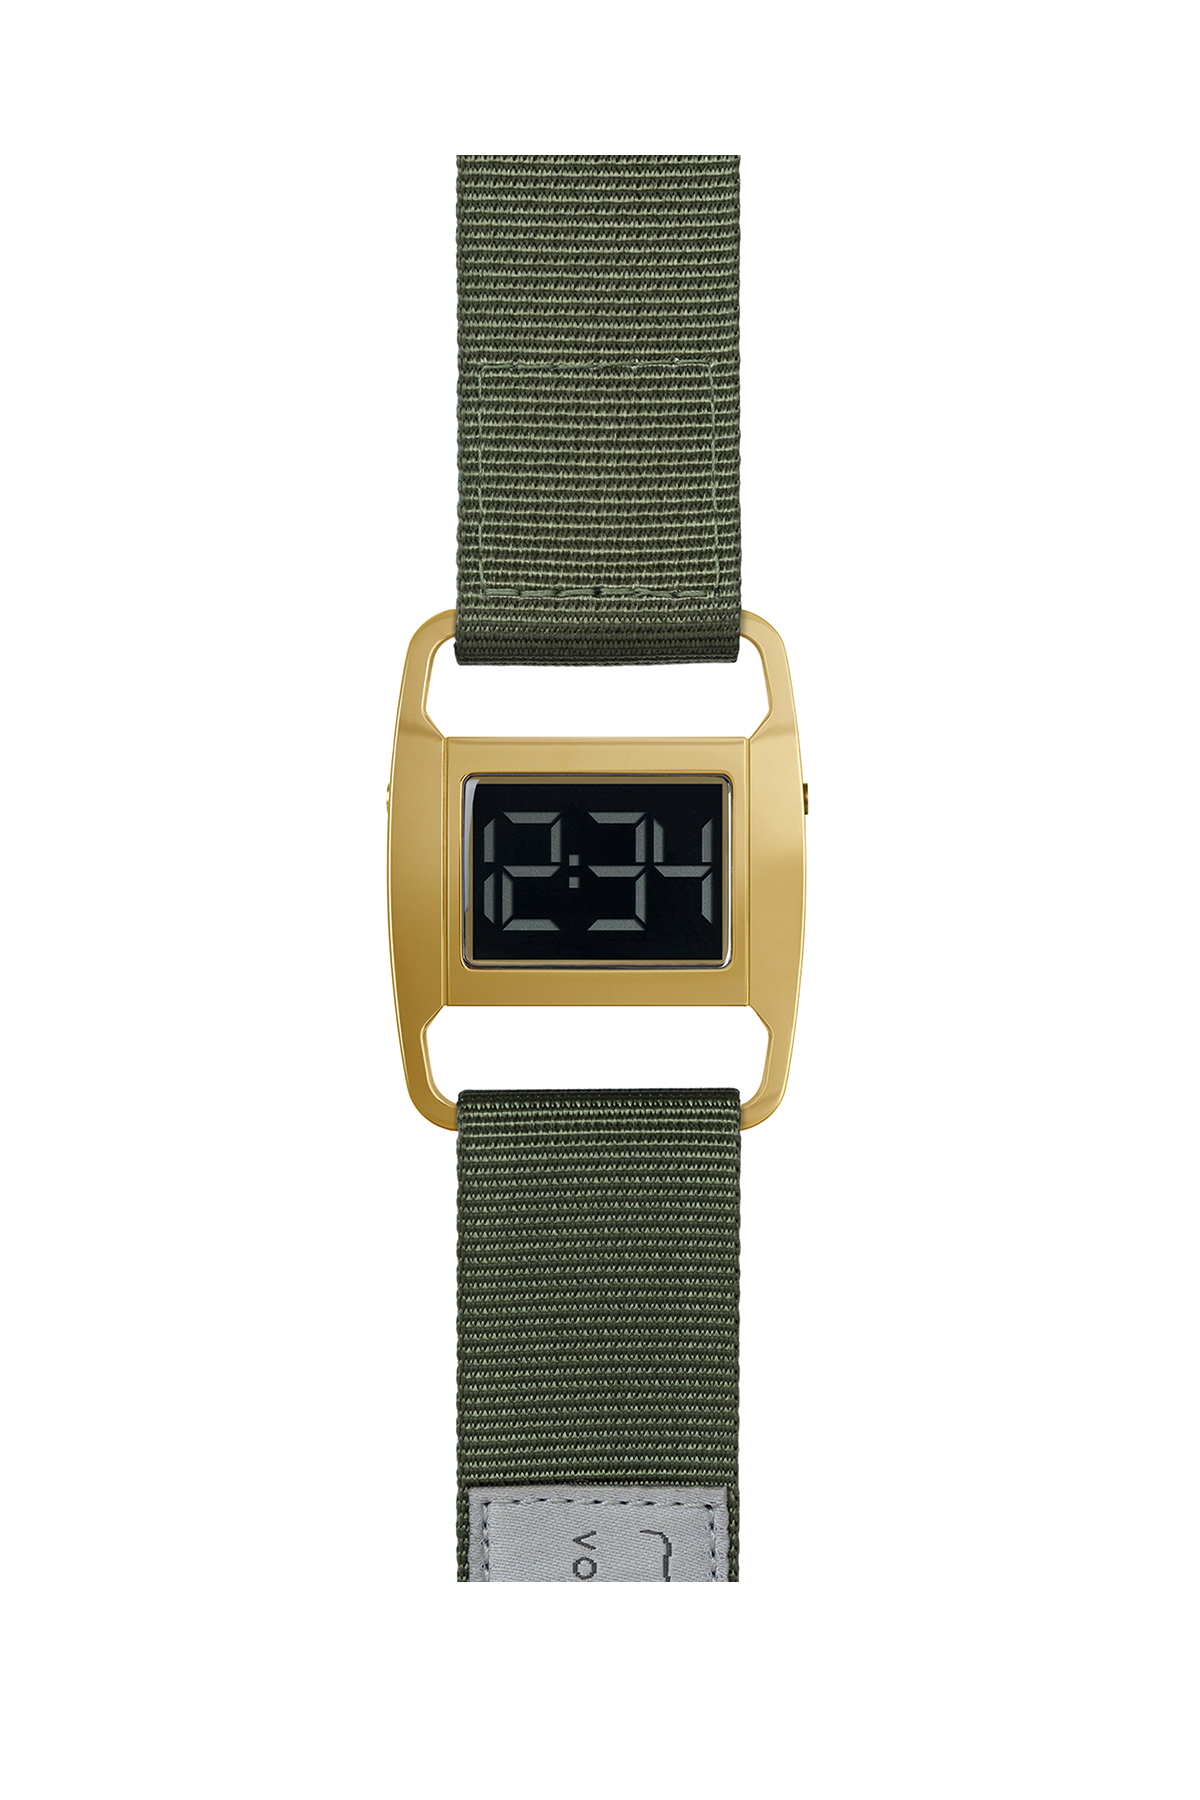 VOID WATCHES : PXR-5 (Gold / Olive)